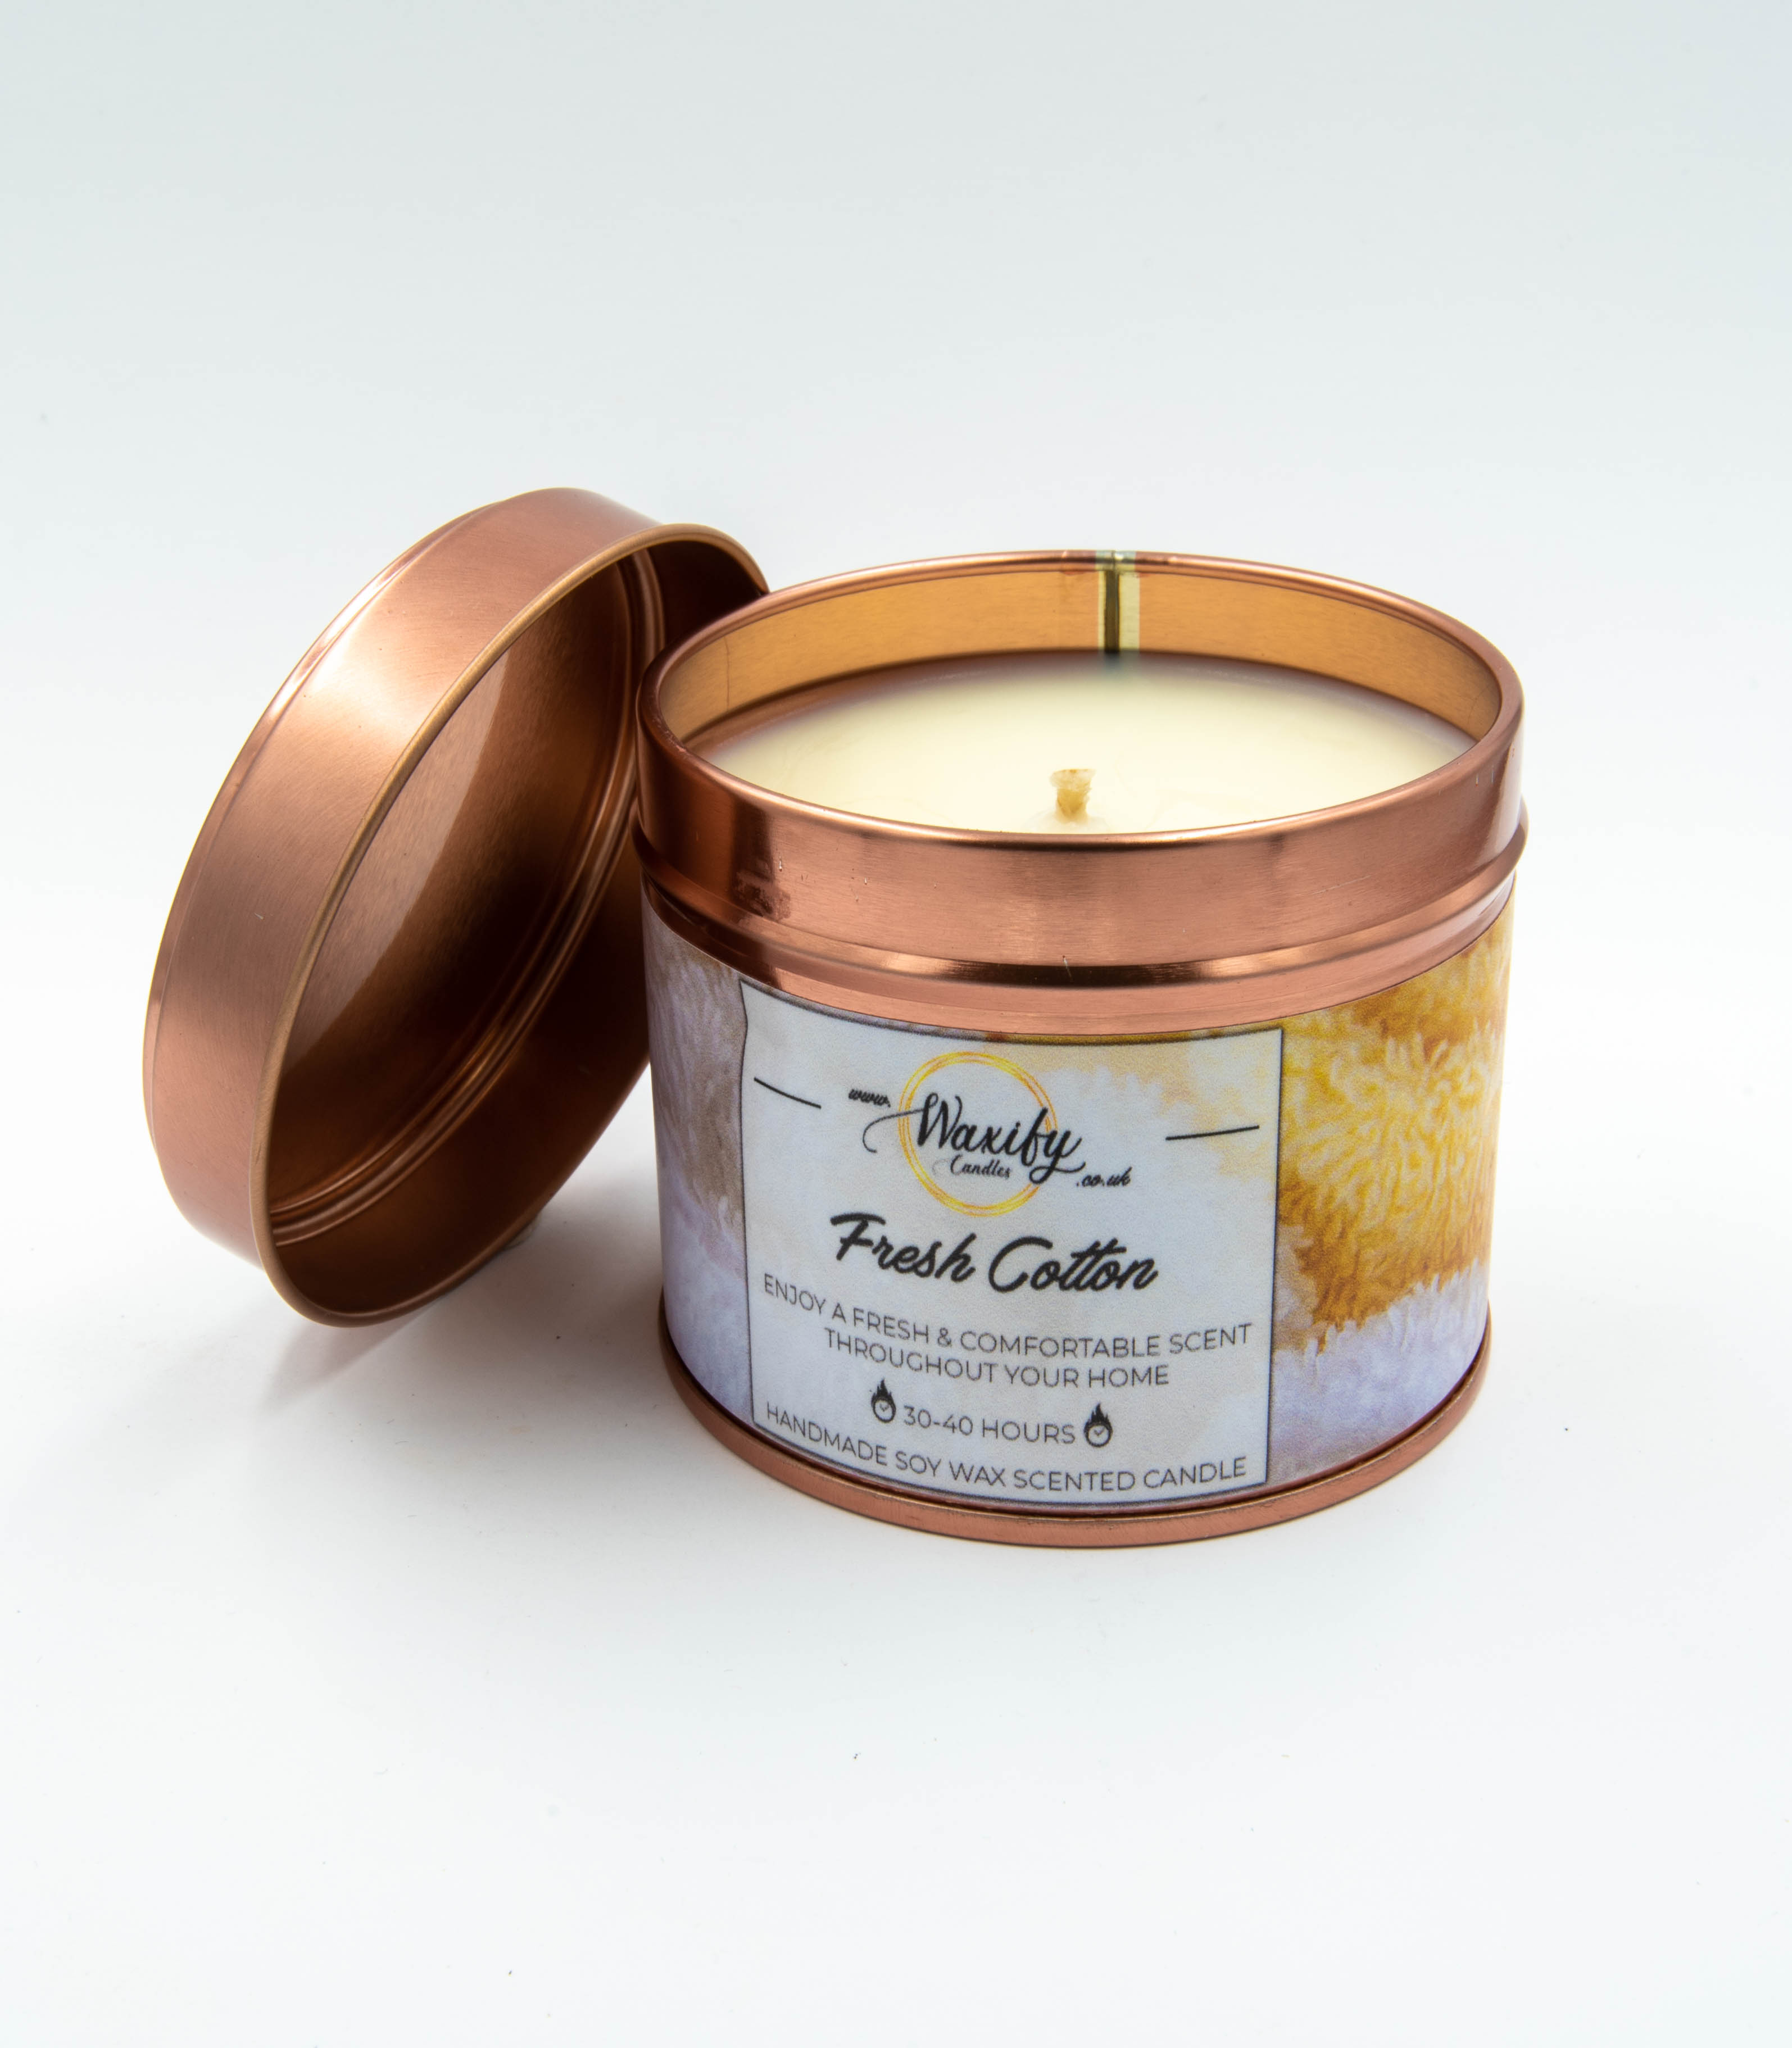 Fresh Cotton Soy Wax Candle